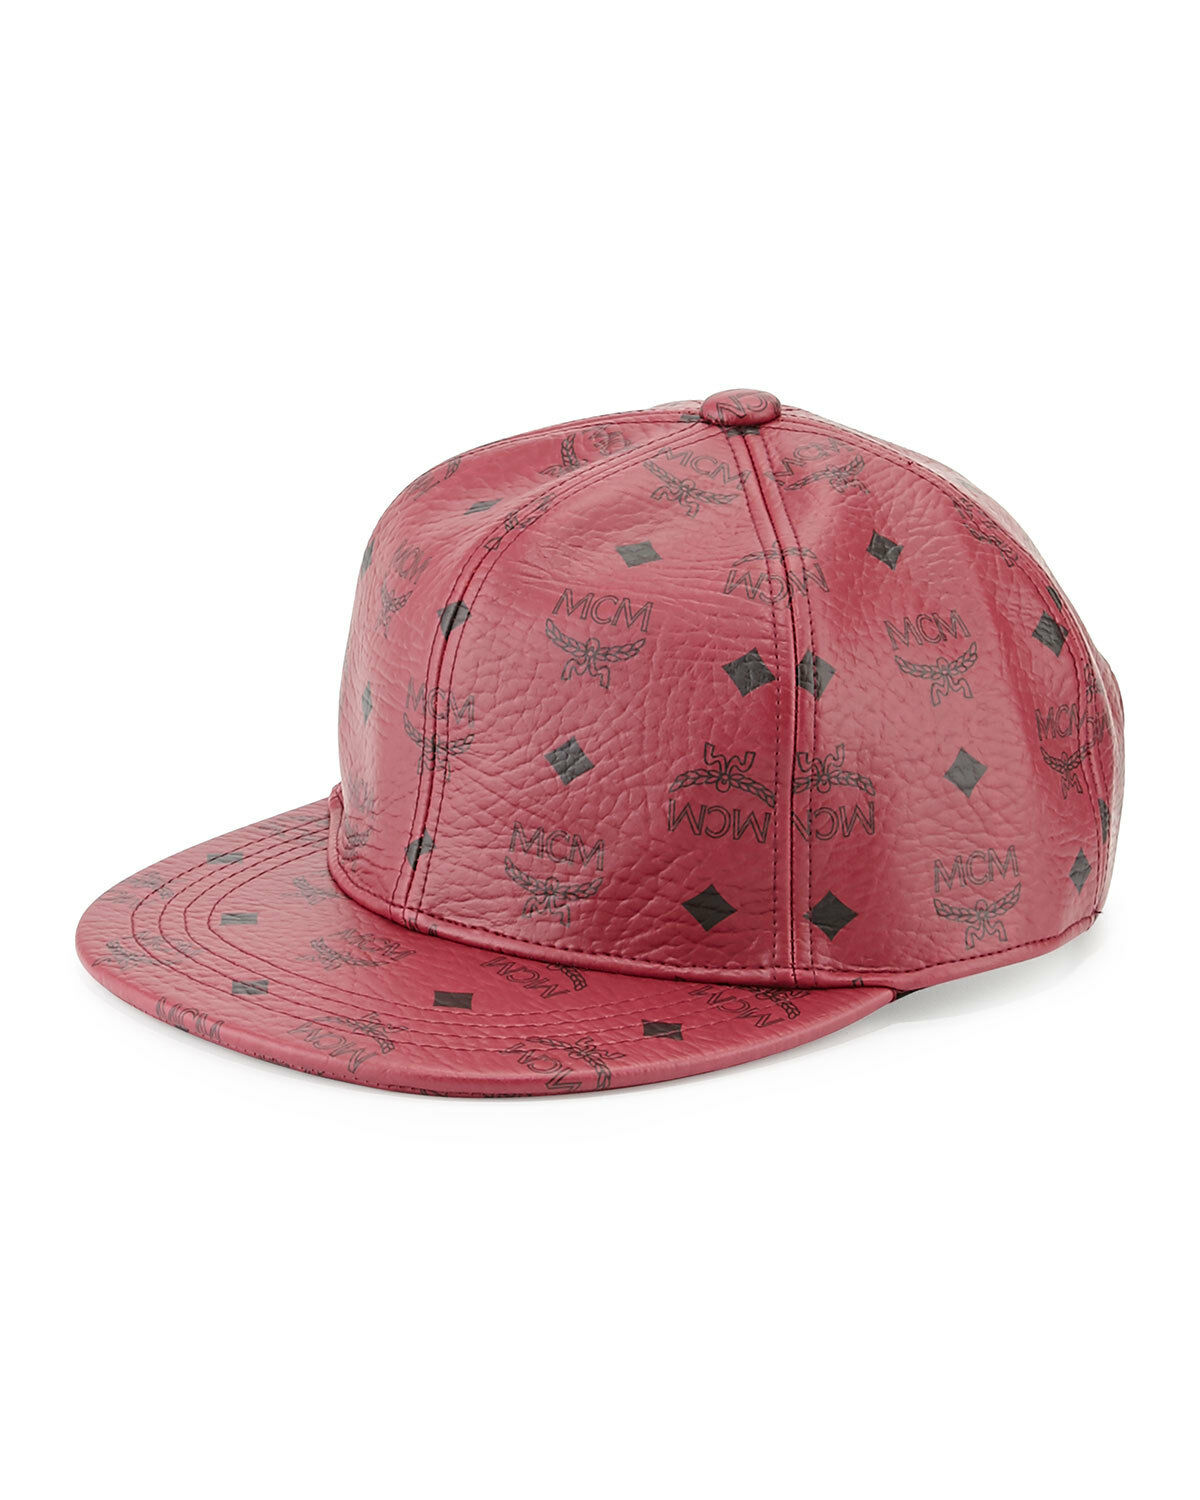 f179e10ba48 100 Authentic MCM Red Leather Visetos Baseball Cap hat for sale ...